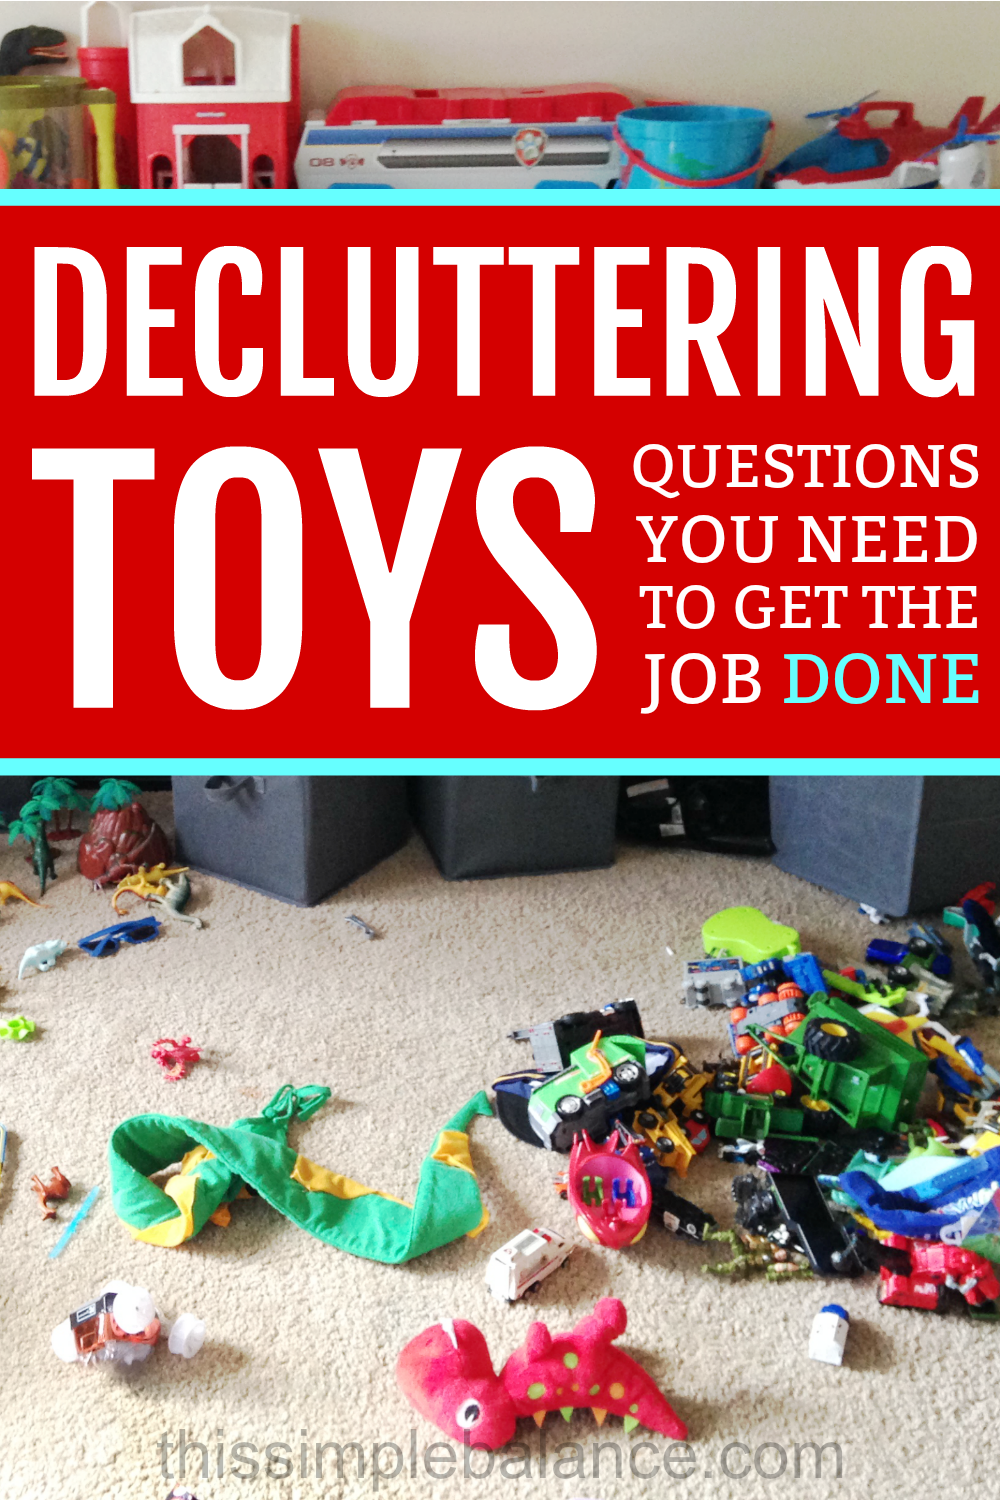 Decluttering Toys: Questions, Tips, Ideas and what we actually kept. #minimalist #decluttering #minimalismwithkids